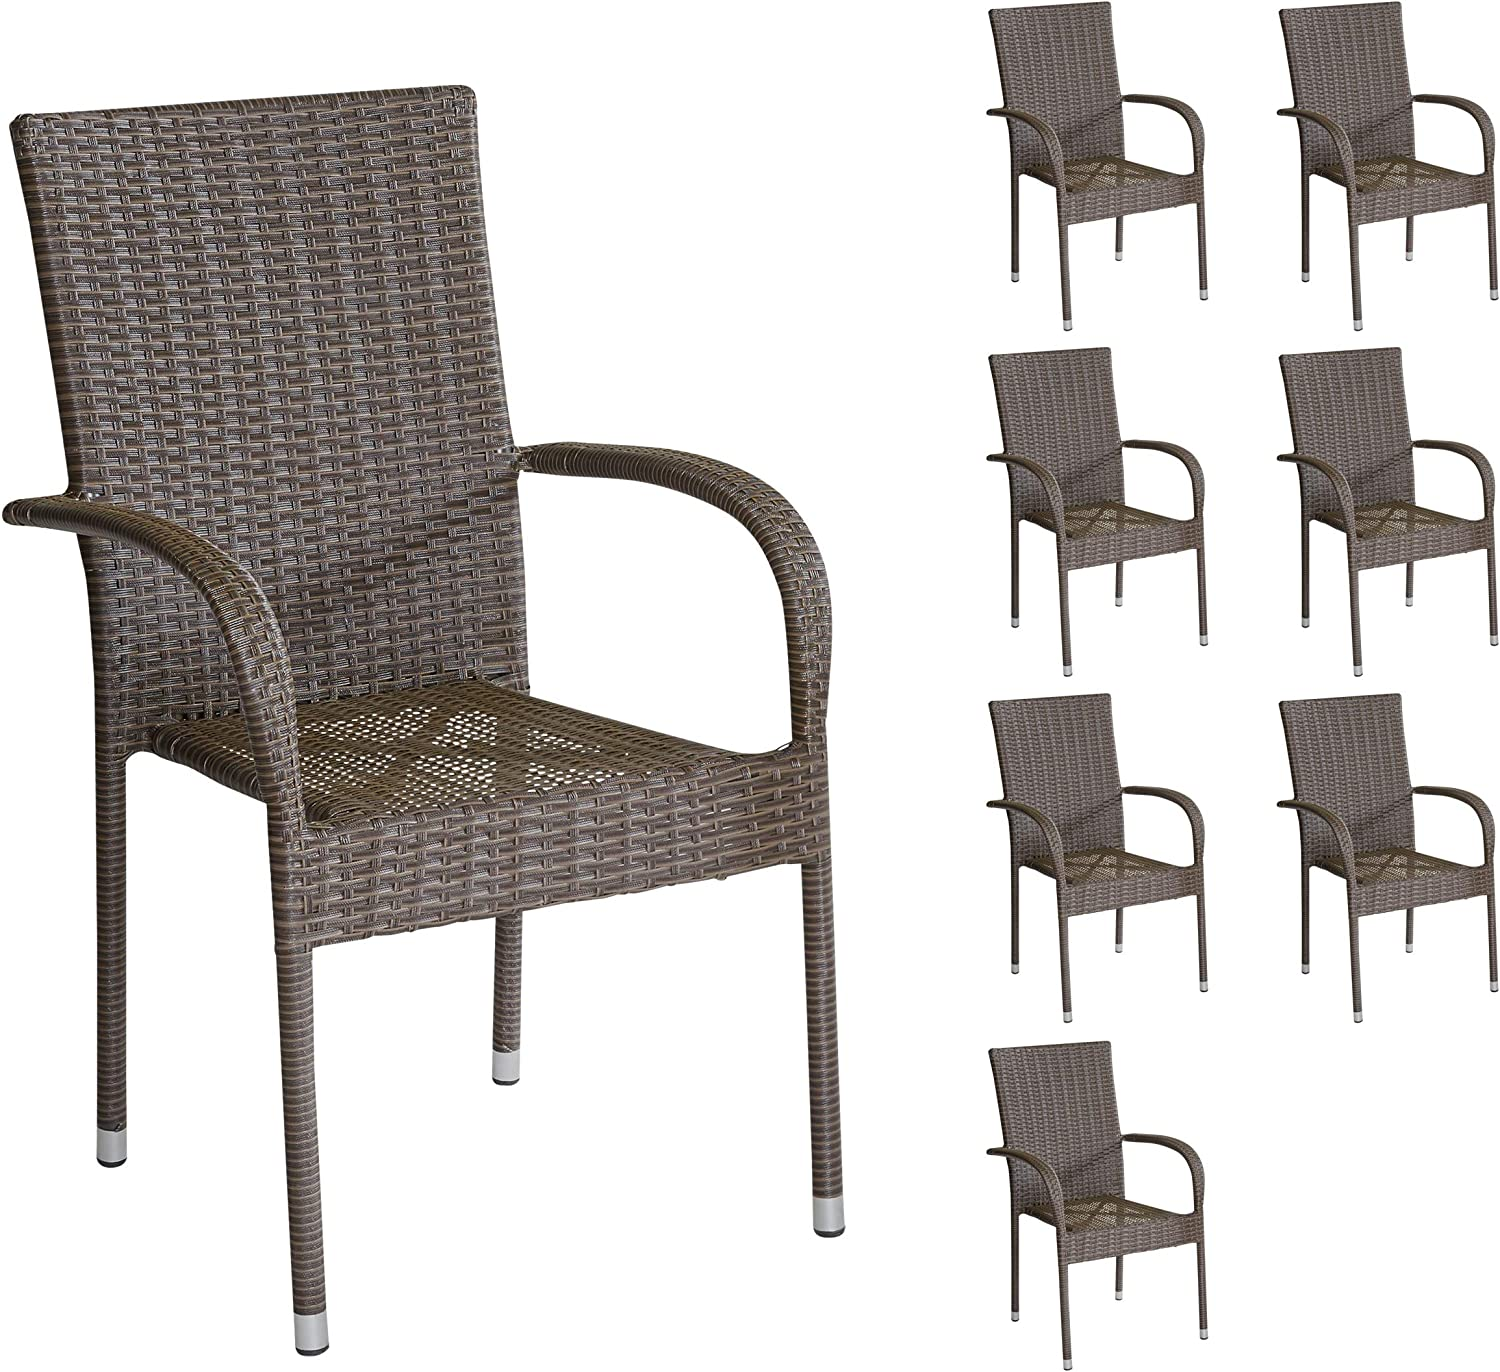 11 x Brown Poly Rattan Stacking Garden Chair Steel Garden Chairs and Balcony  Chairs